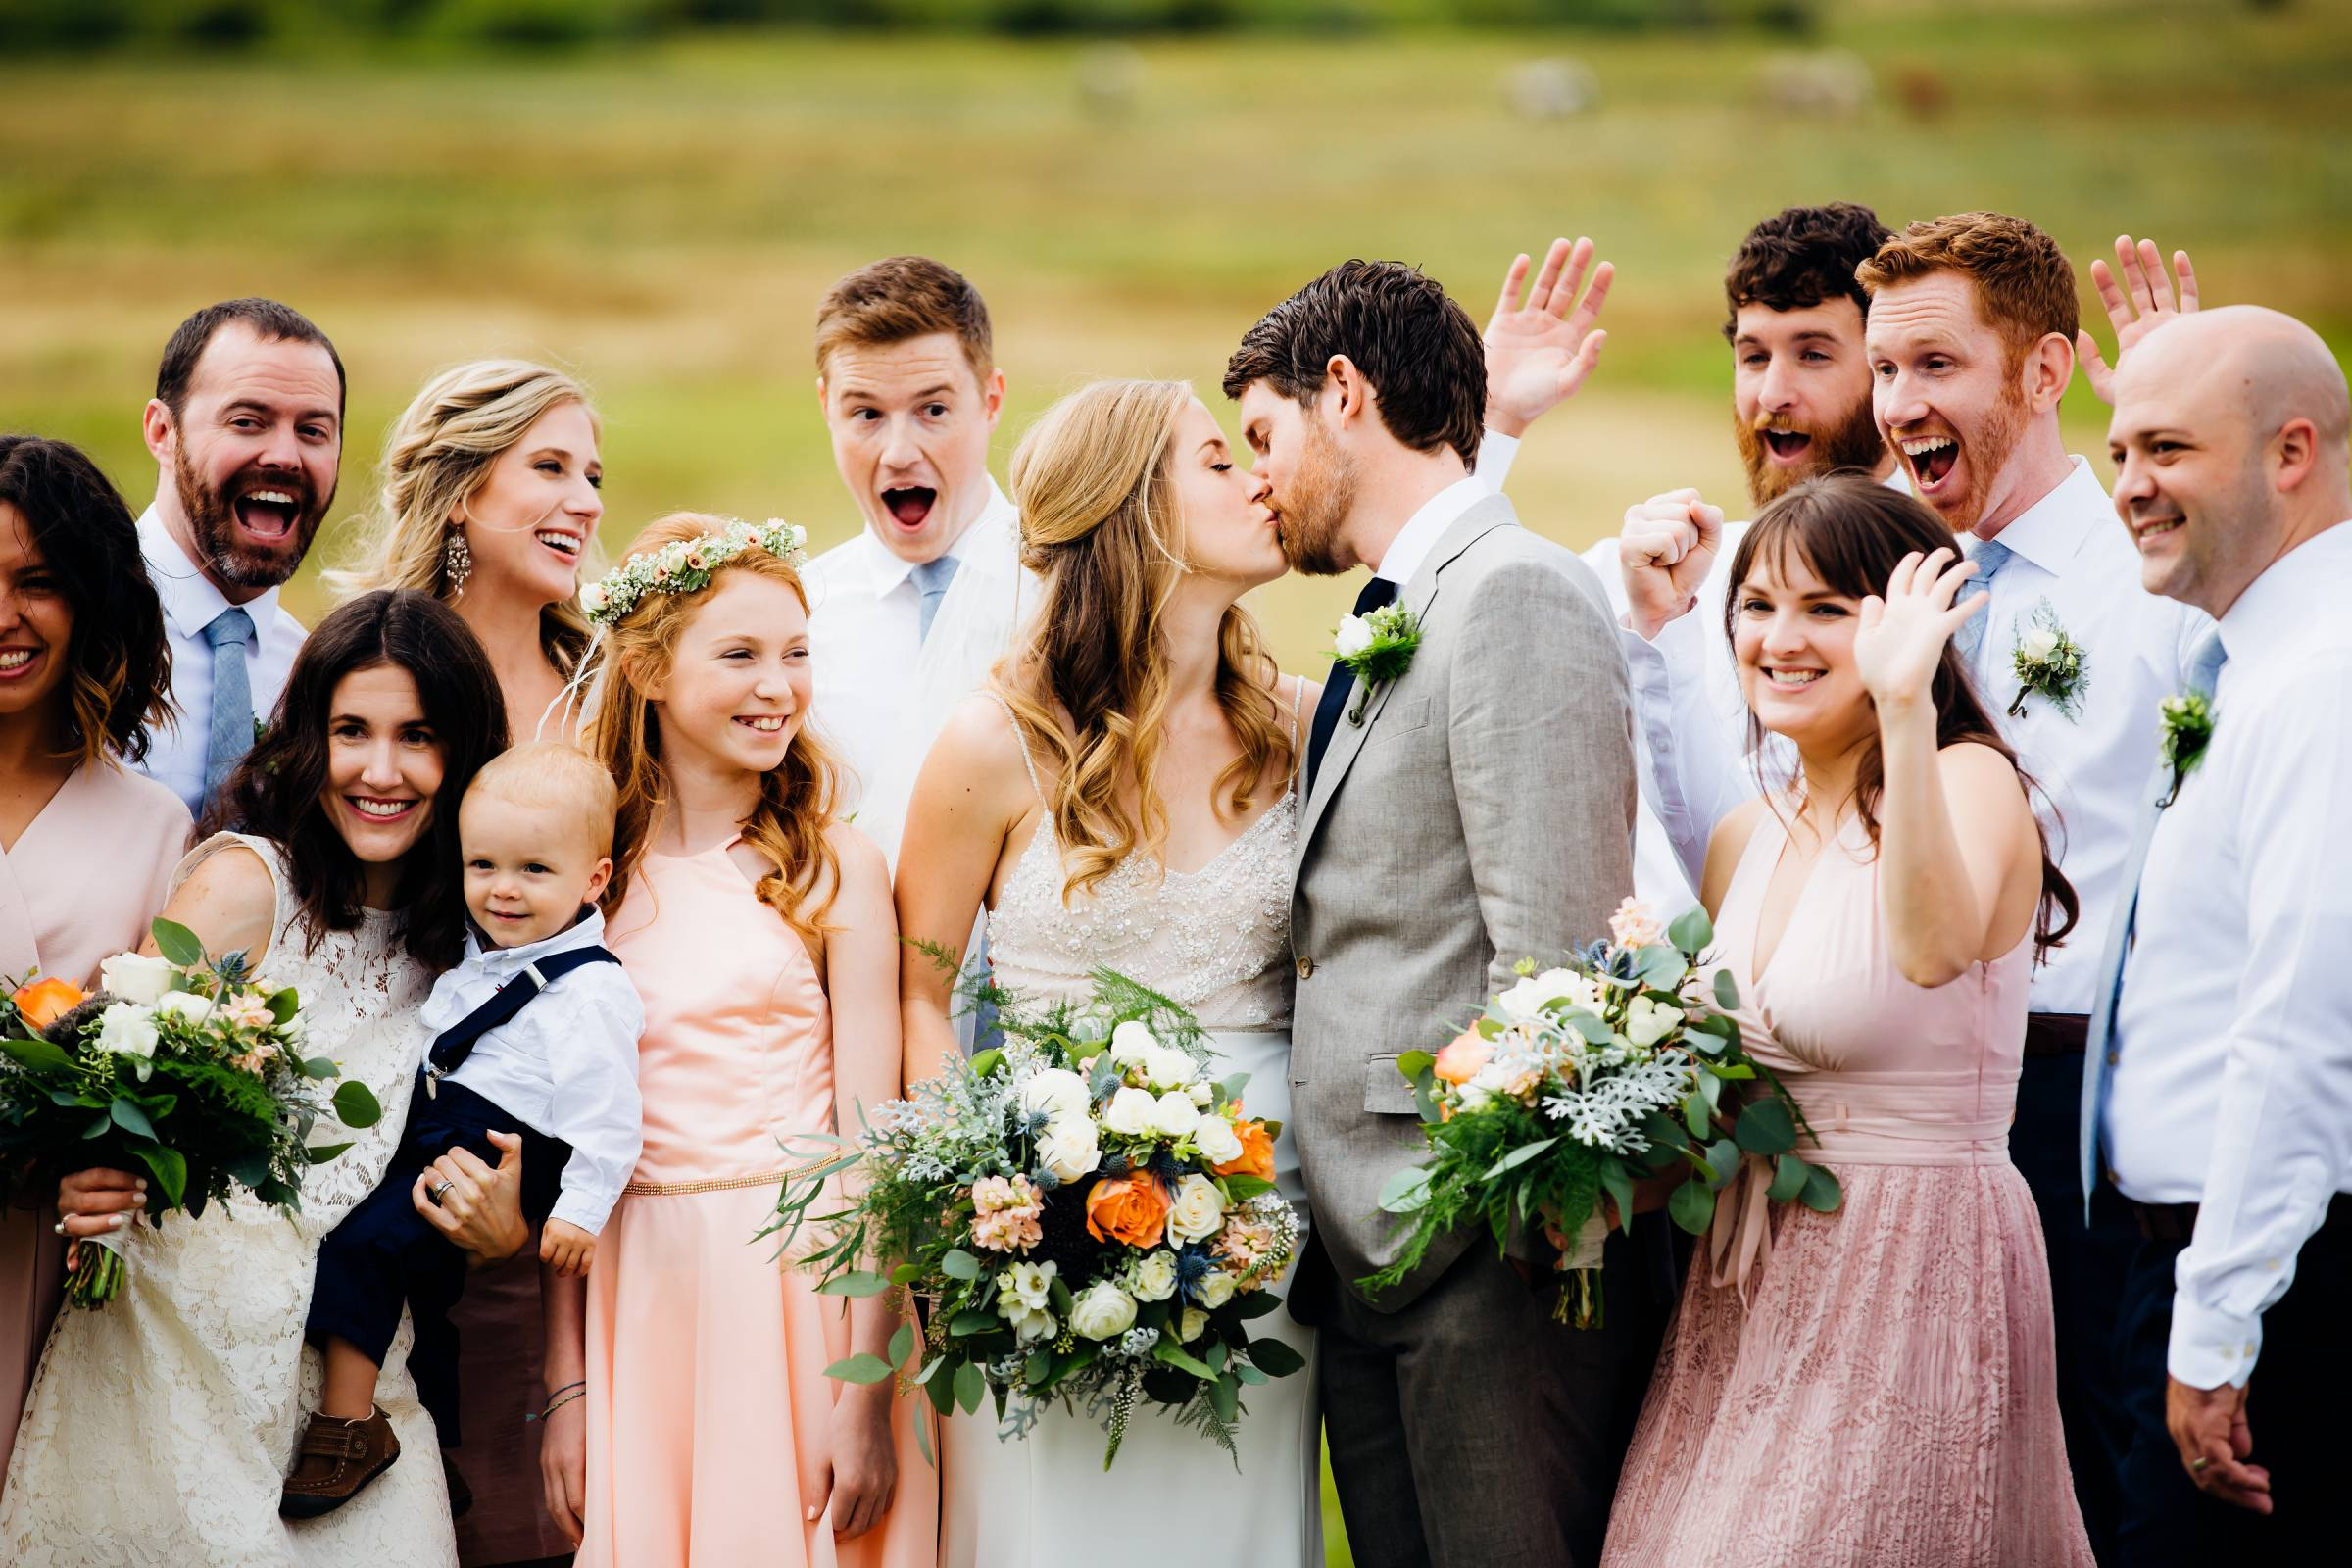 bride and groom kissing with wedding party | Rocky Mountain wedding planned by Glow Events